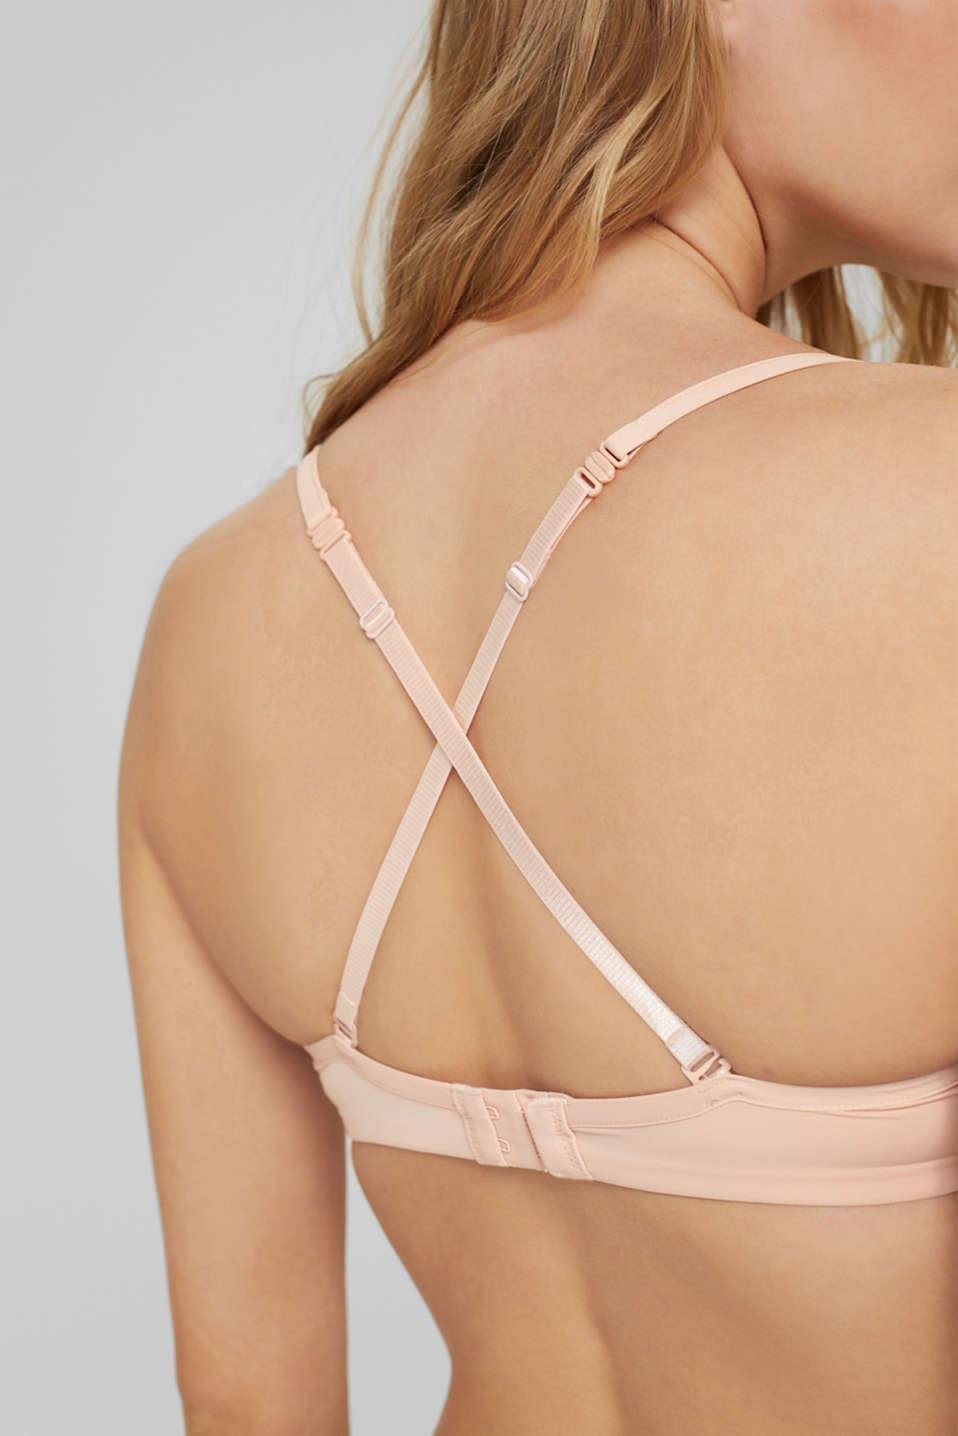 Unpadded underwire bra with a lace trim, PASTEL ORANGE, detail image number 4